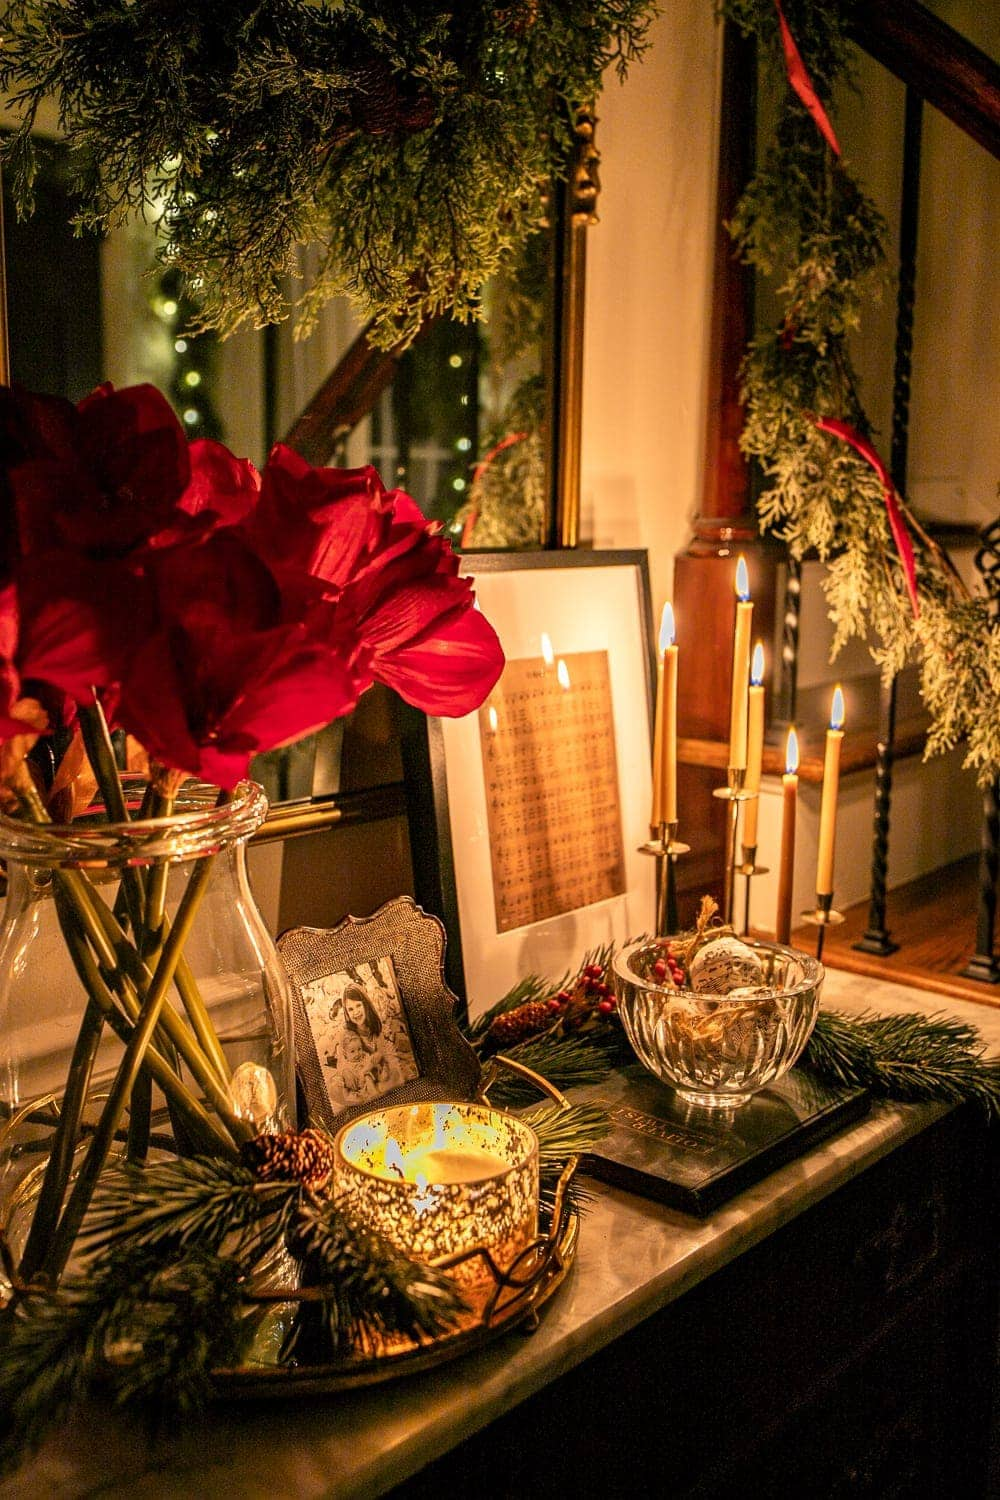 Christmas night vignette with candlelight